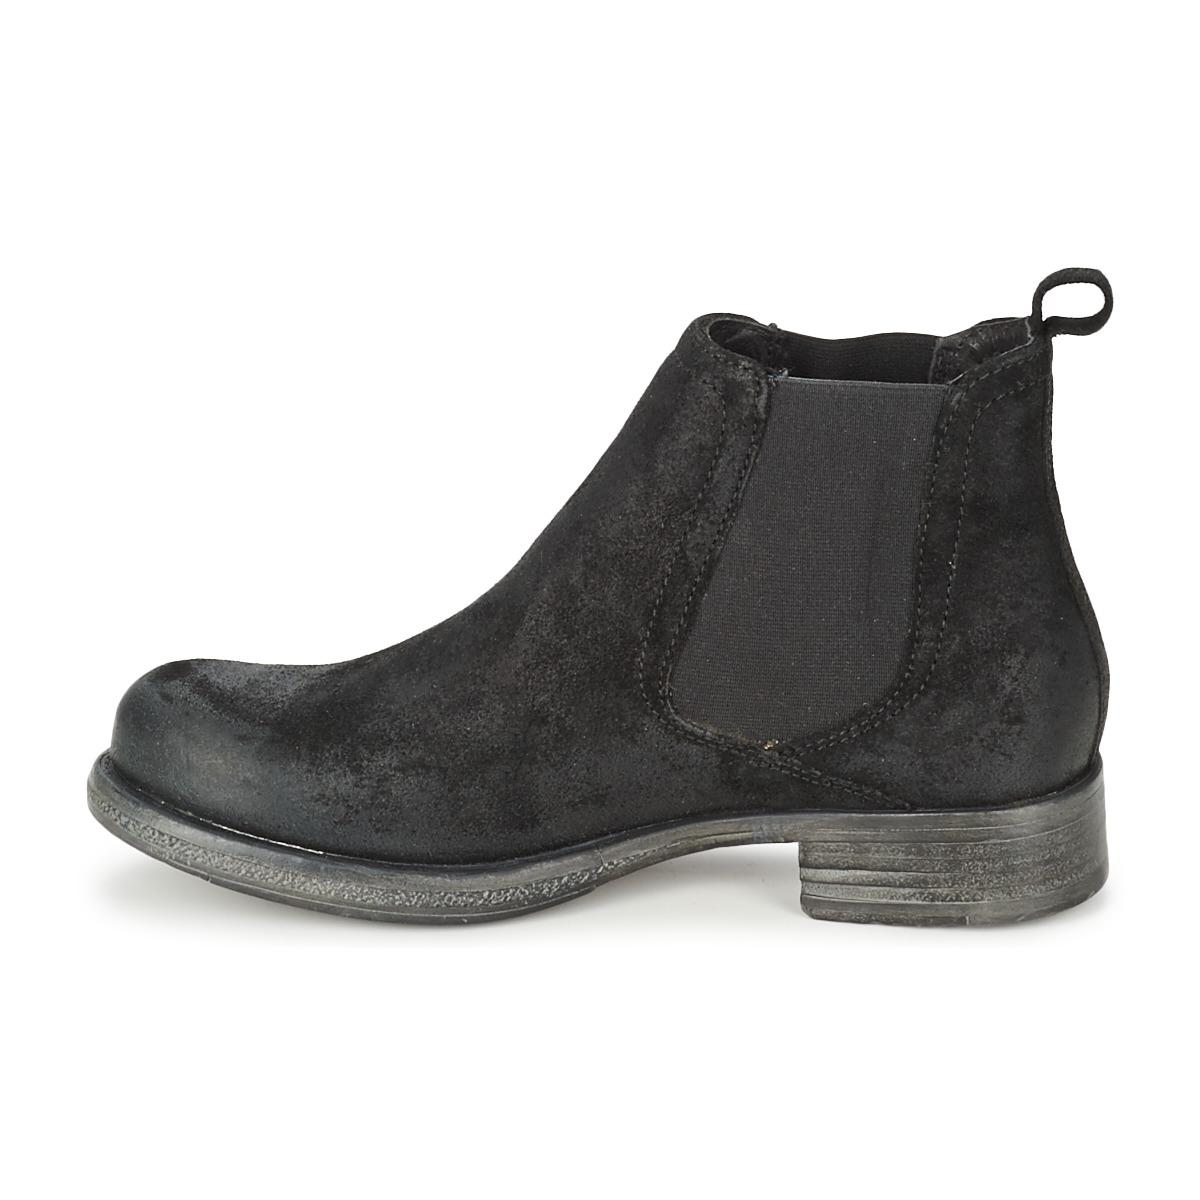 U.S. POLO ASSN. Leather Kelly Mid Boots in Black